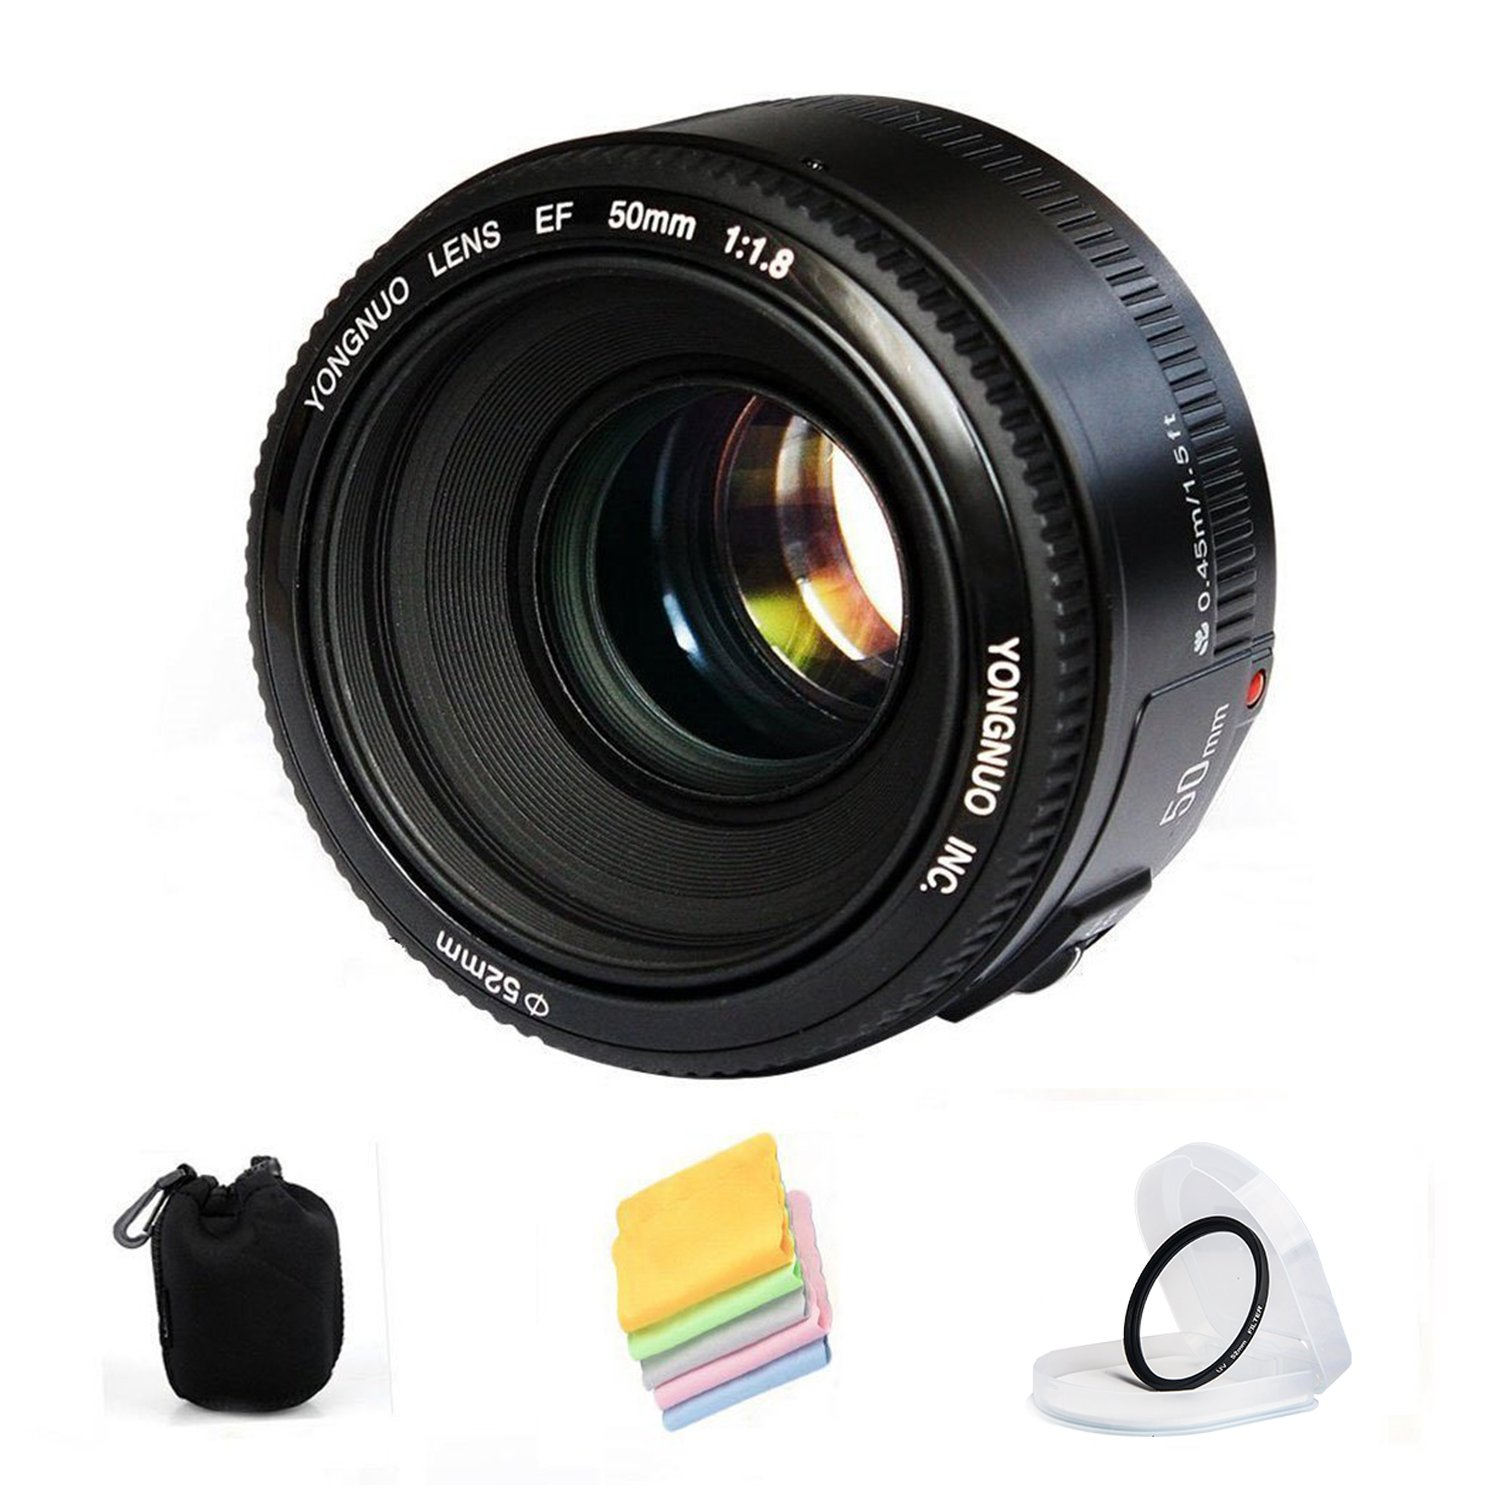 YONGNUO YN50mm F1.8 Standard Prime Lens Large Aperture Auto Focus Lens For Canon EF Mount Rebel DSLR Camera , with lens Pouch , UV filter , cleaning cloth